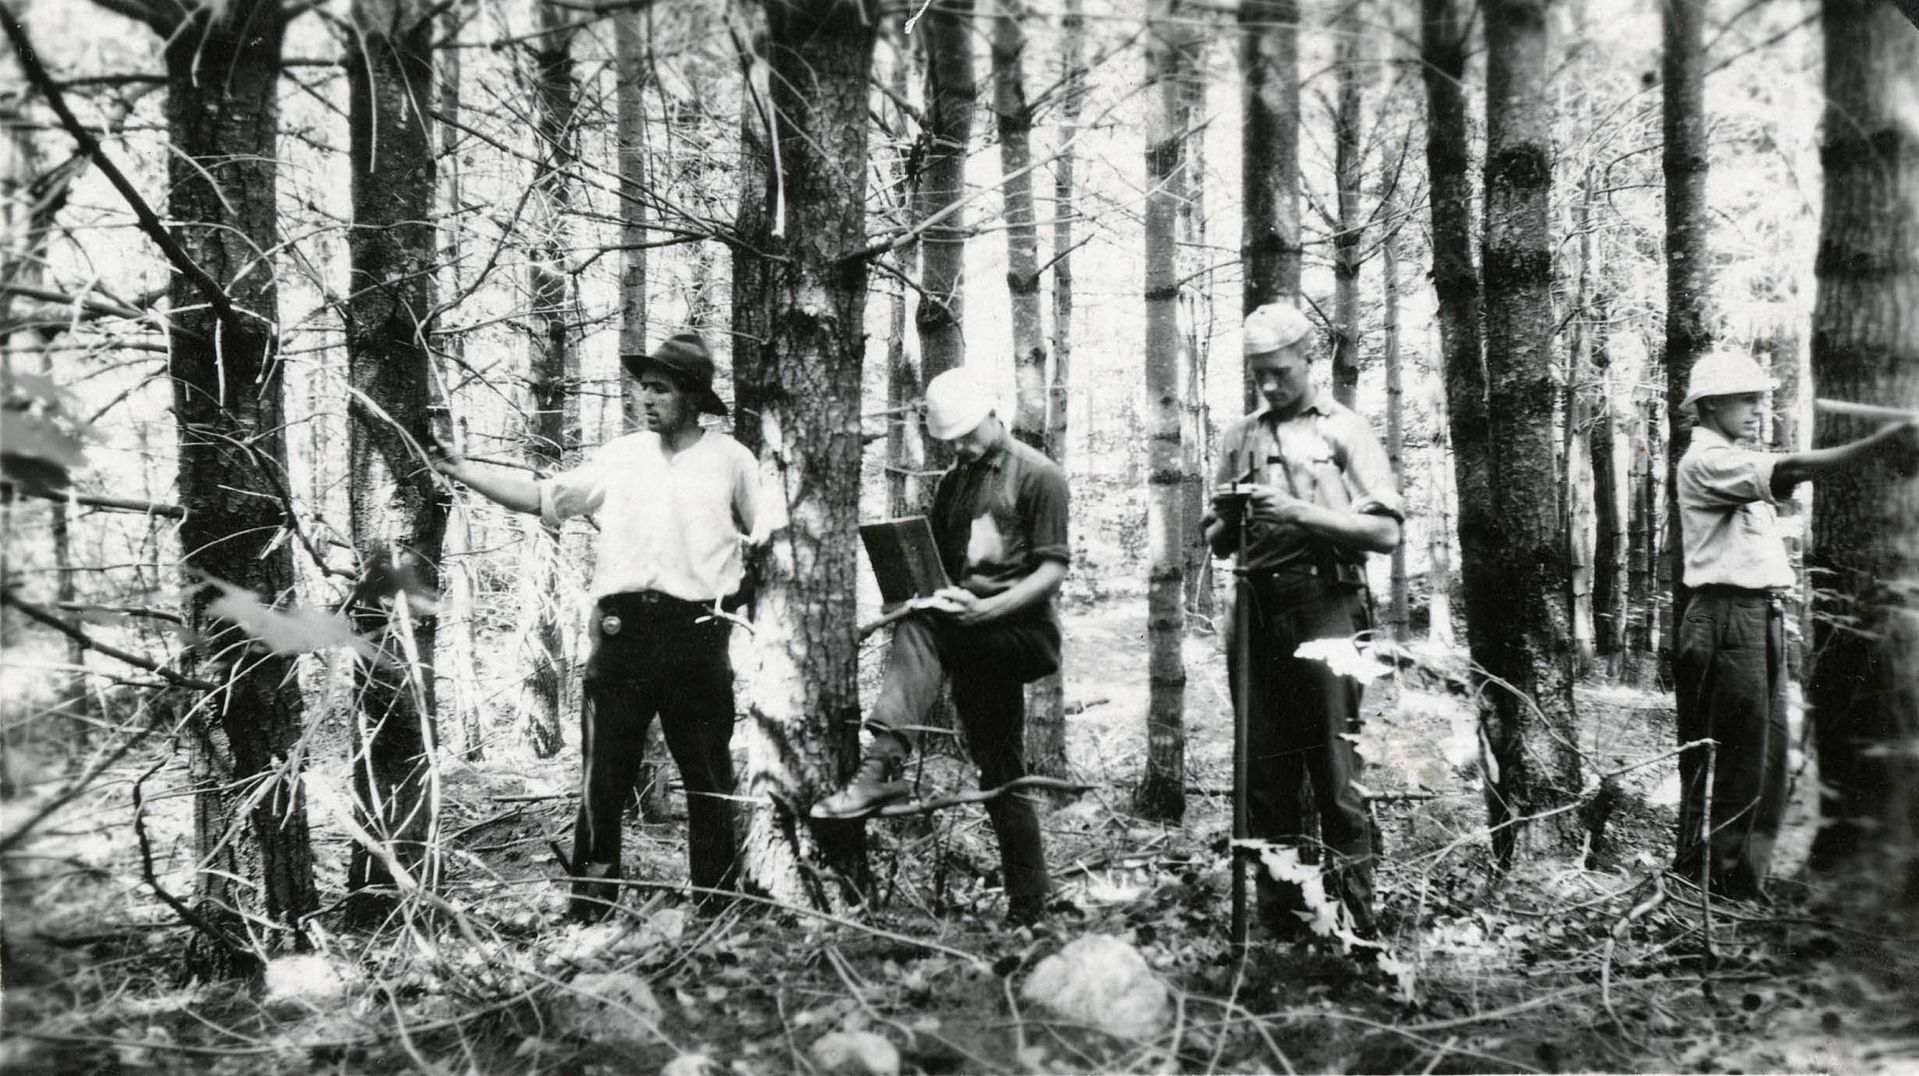 In 1921, AssistantProfessor of Forestry Bernard Leete, left, led aspiring Bates forestry majors during summer fieldwork in the Bates Forest. (Muskie Archies and Special Collections Library)